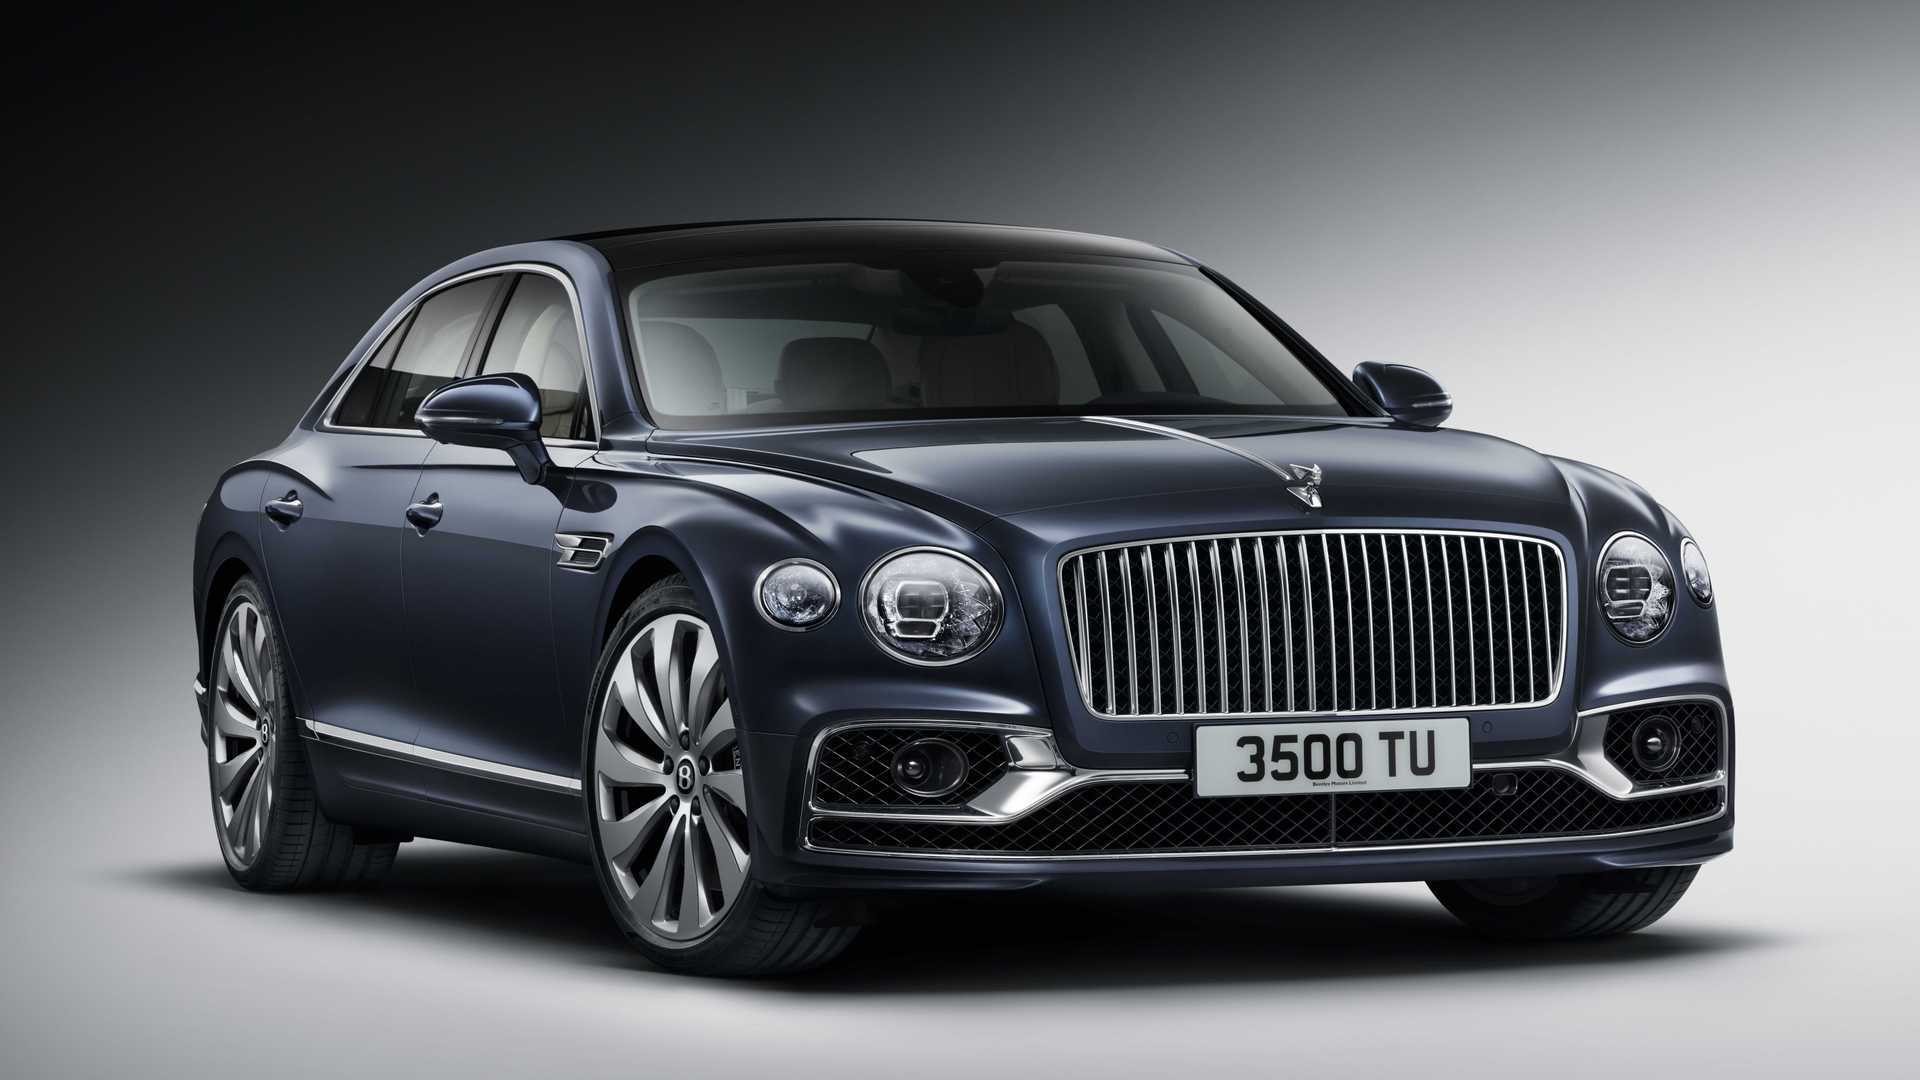 Bentley has held a presentation dedicated to the upcoming third generation of its Flying Spur luxury sedan/saloon